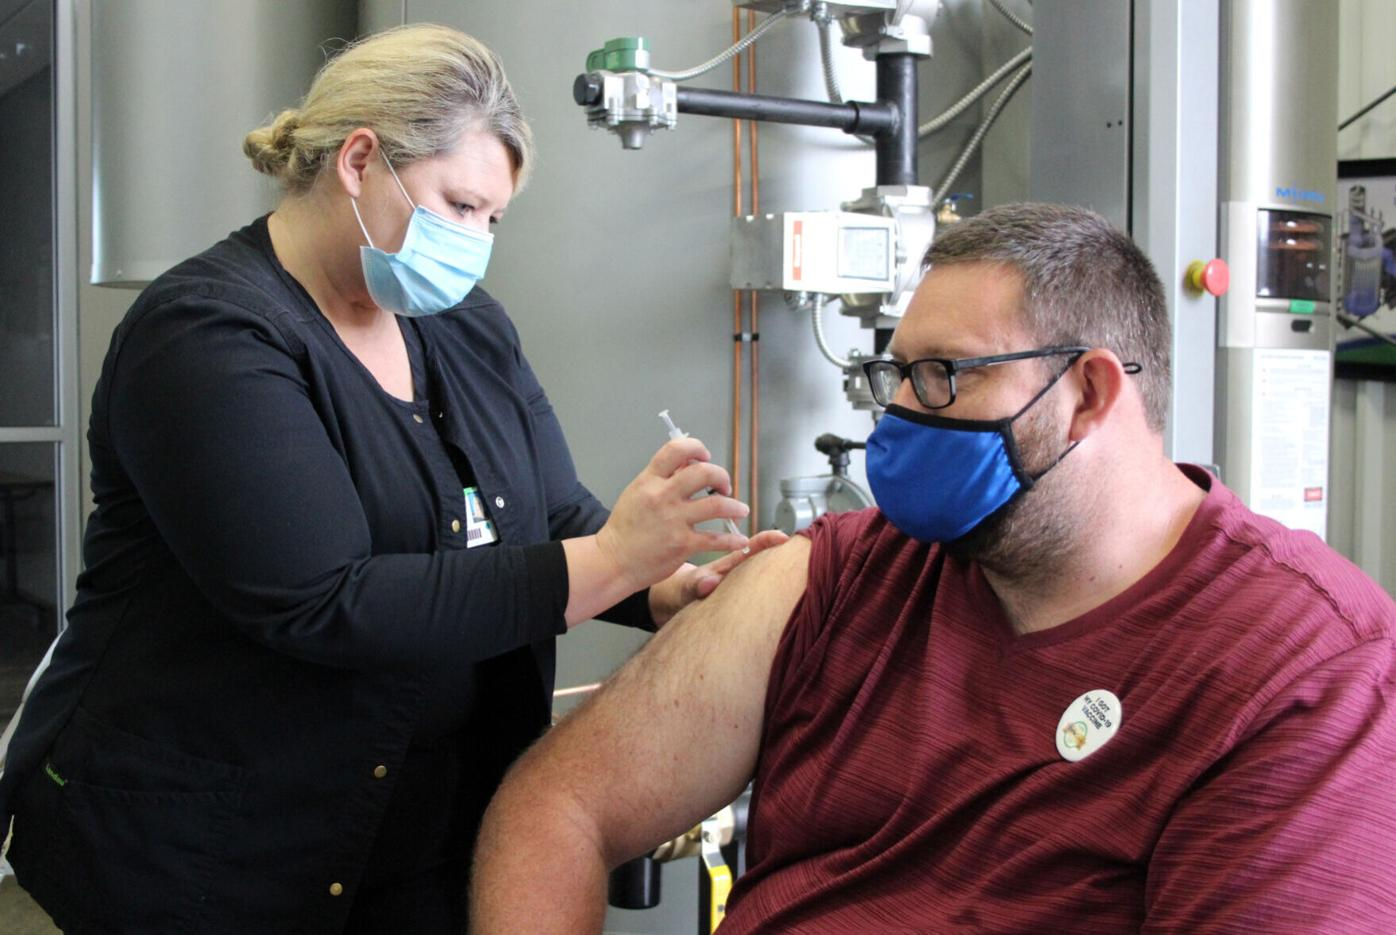 Development authority hosts vaccine clinic at industry